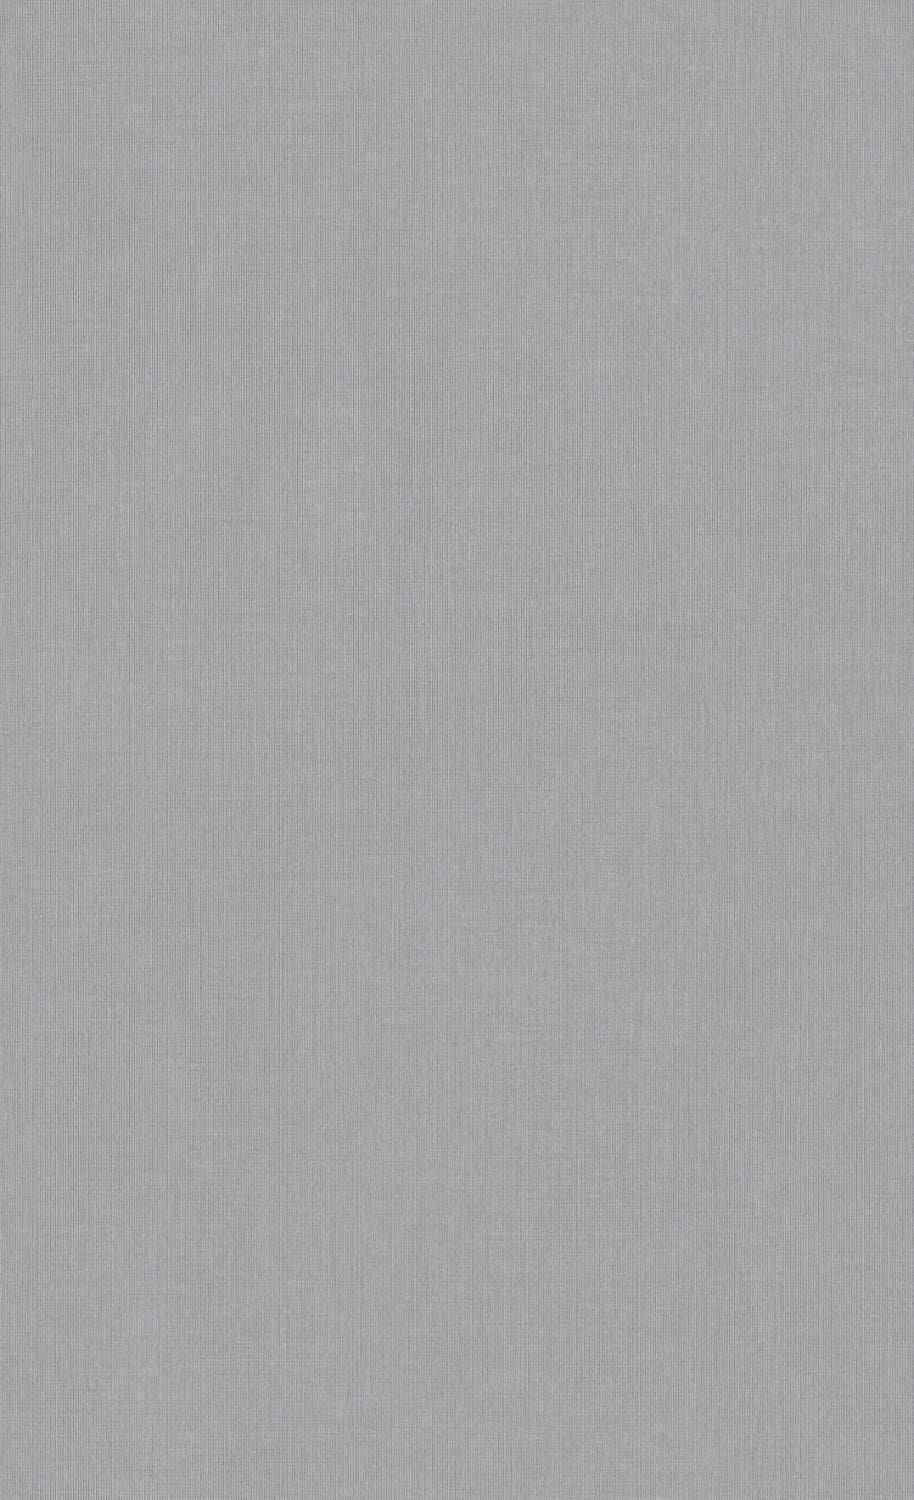 Grey Basic Texture Vinyl Wallcovering C7359. Grey wallpaper. Vinyl wallpaper. Commercial wallpaper. Corporate wallpaper. Hospitality wallpaper.